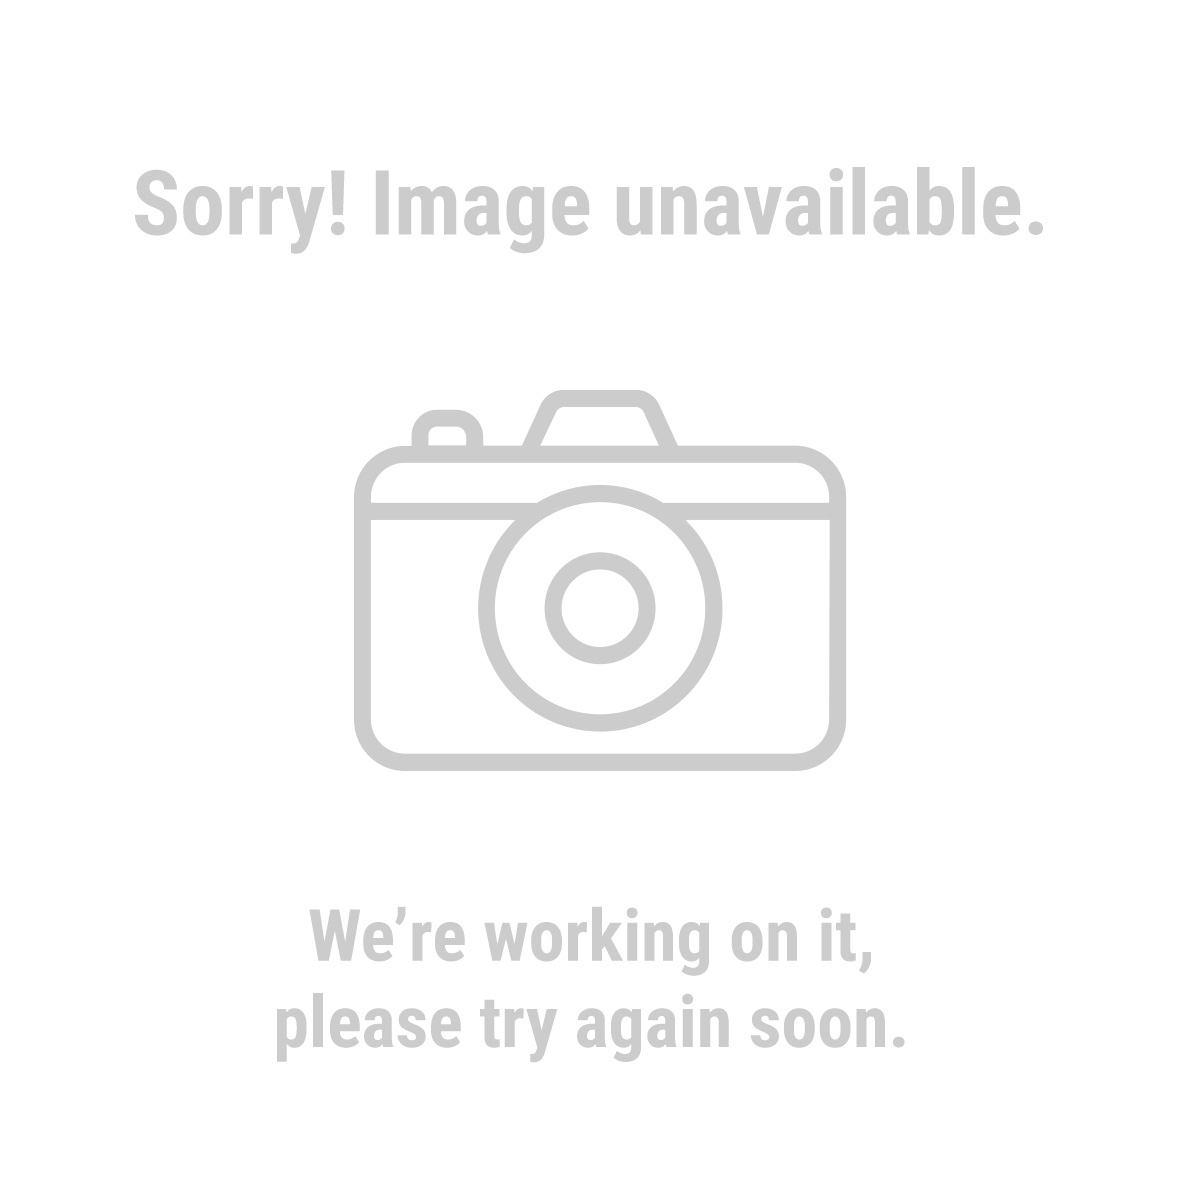 Pittsburgh 60593 Internal and External Circlip Pliers